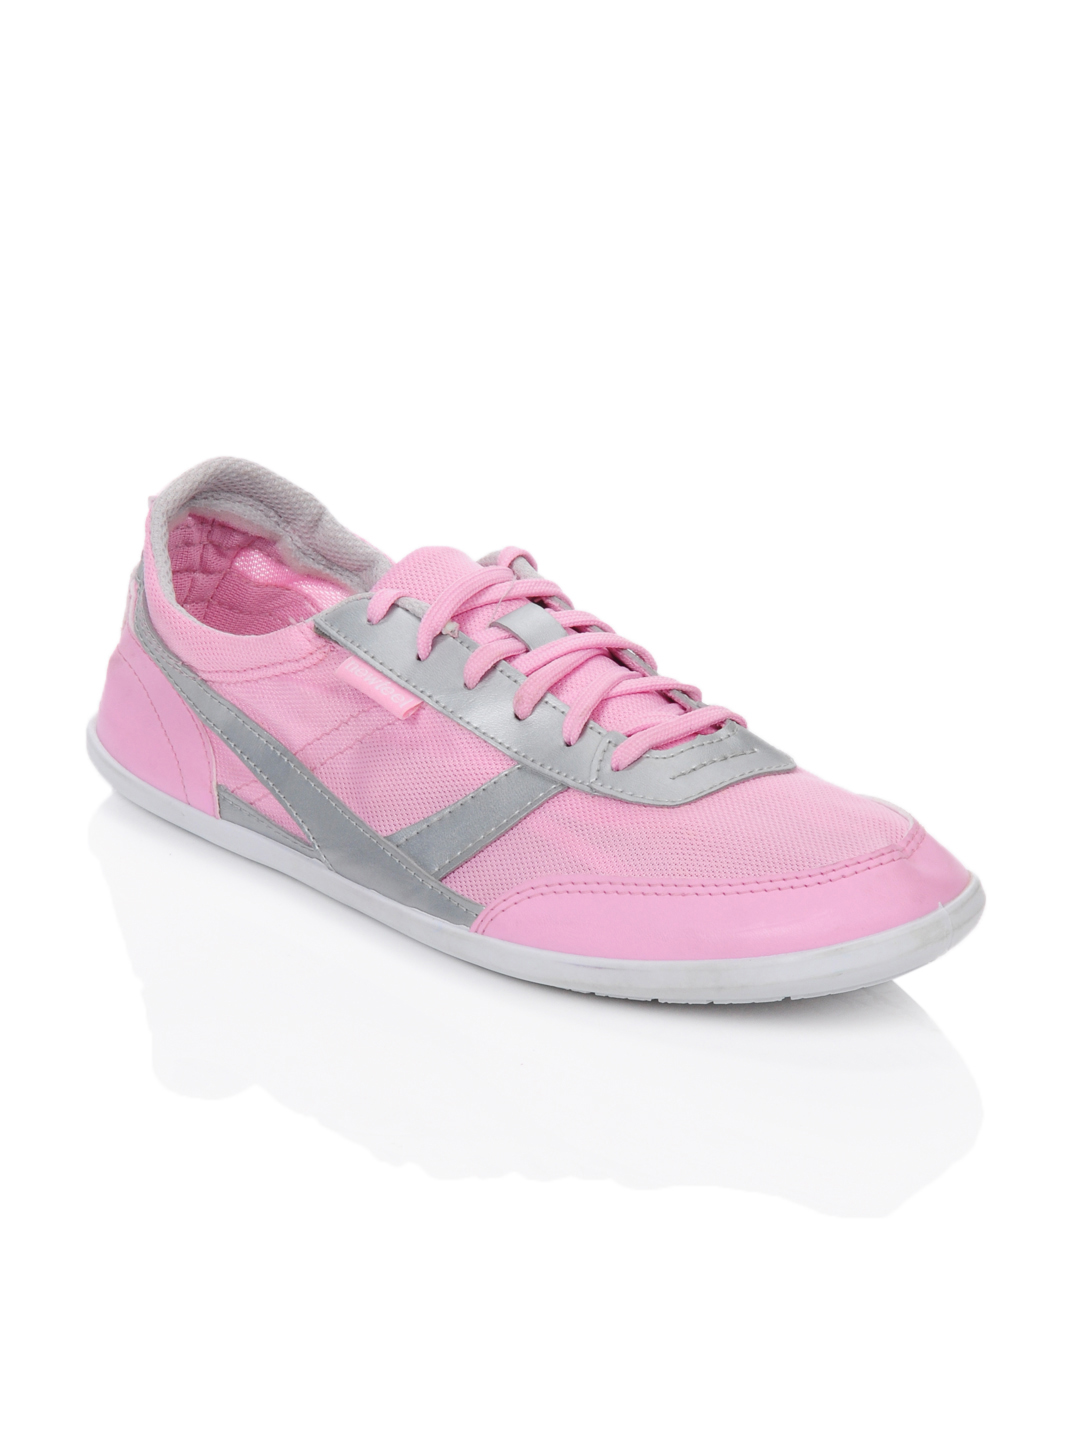 Newfeel Women Pink Shoes